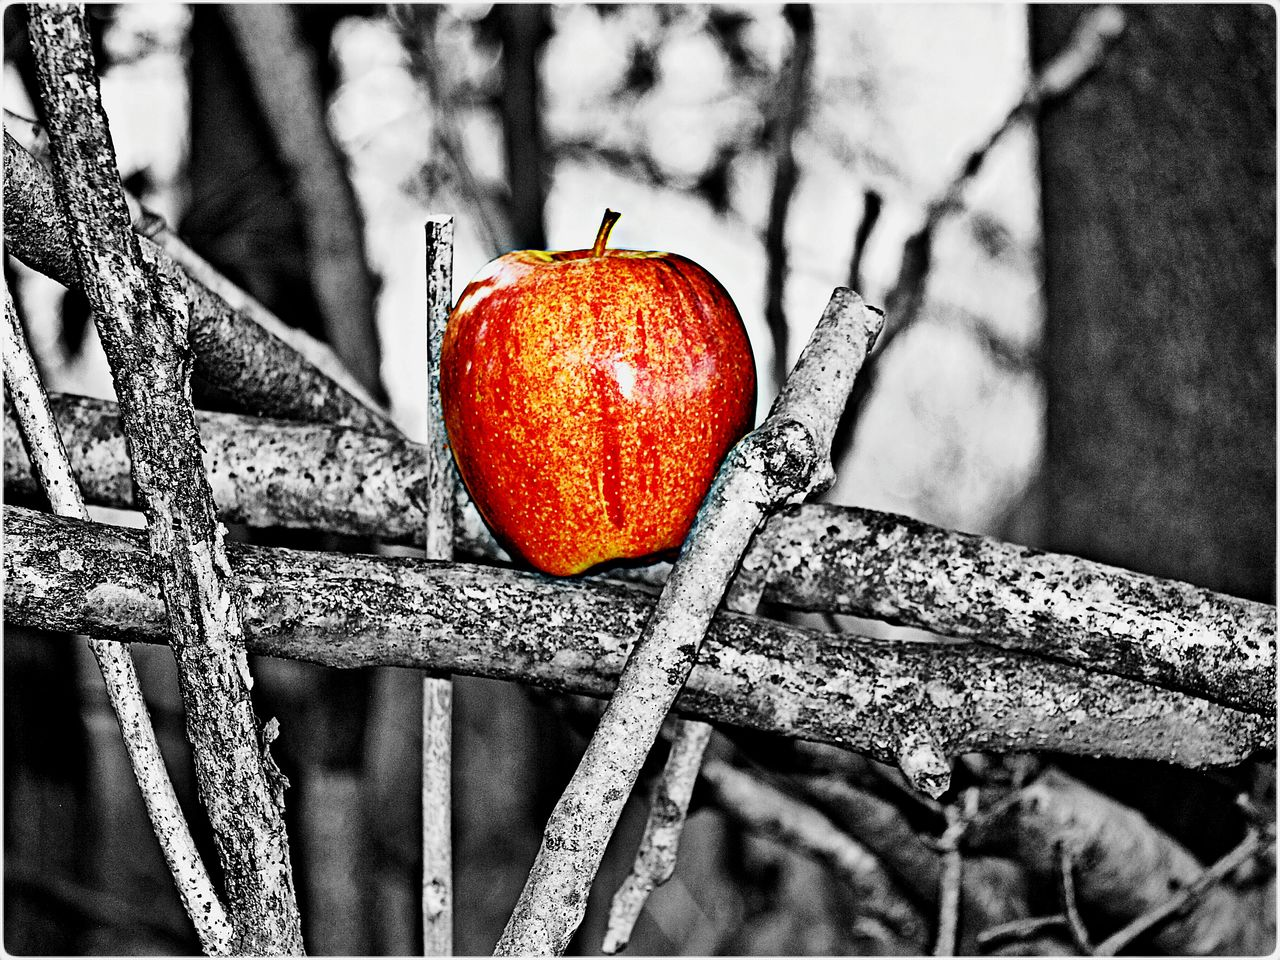 An Apple a Day Photo Collection - Sticks 3, Deceptively Simple Enticement Beauty In Simplicity Find Me, Pick Me, Eat Me Nature Fruit Art Twigs EyeEm Gallery Wall Art